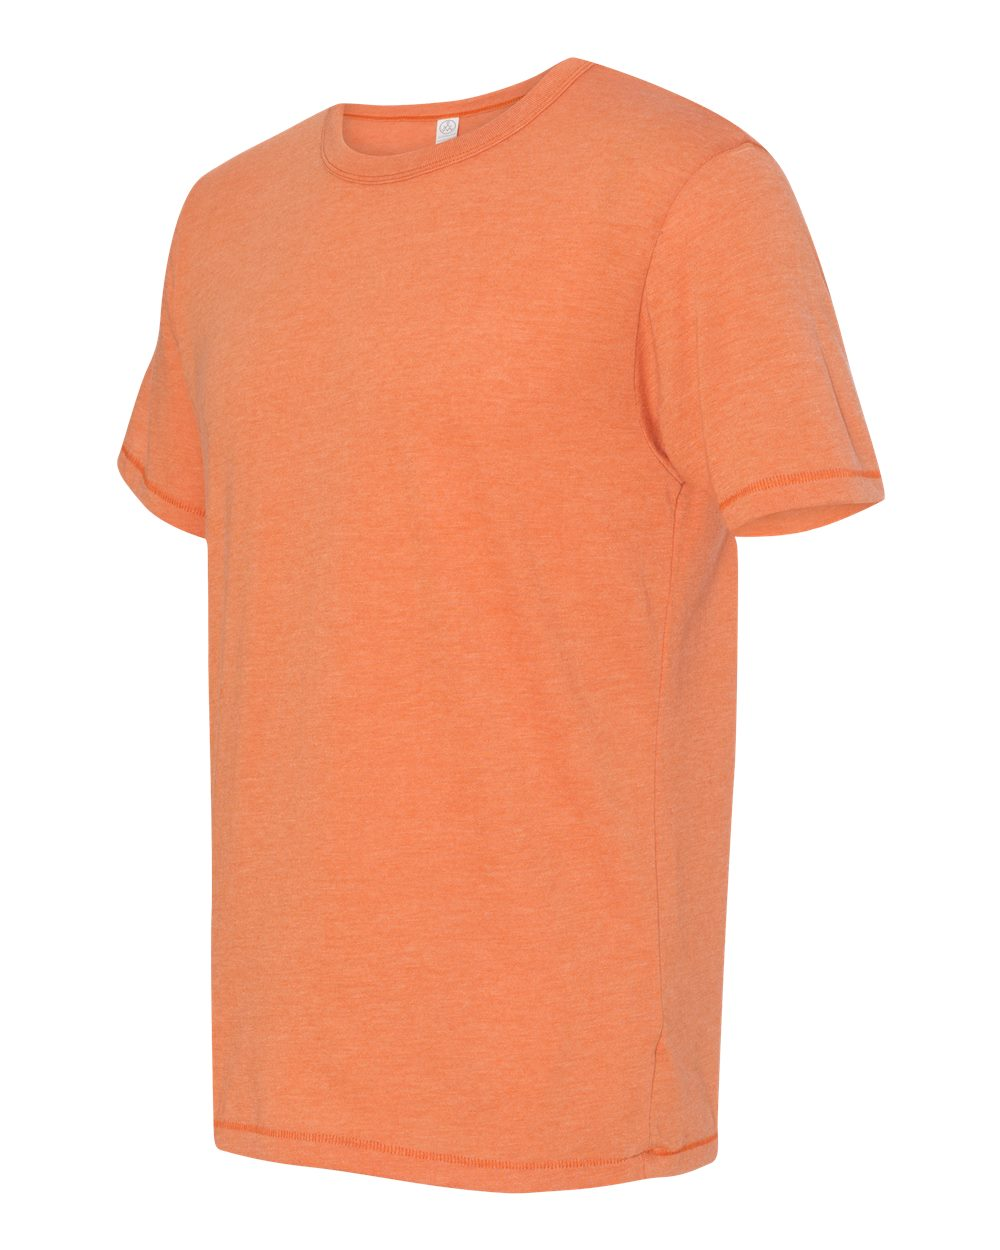 click to view Southern Orange